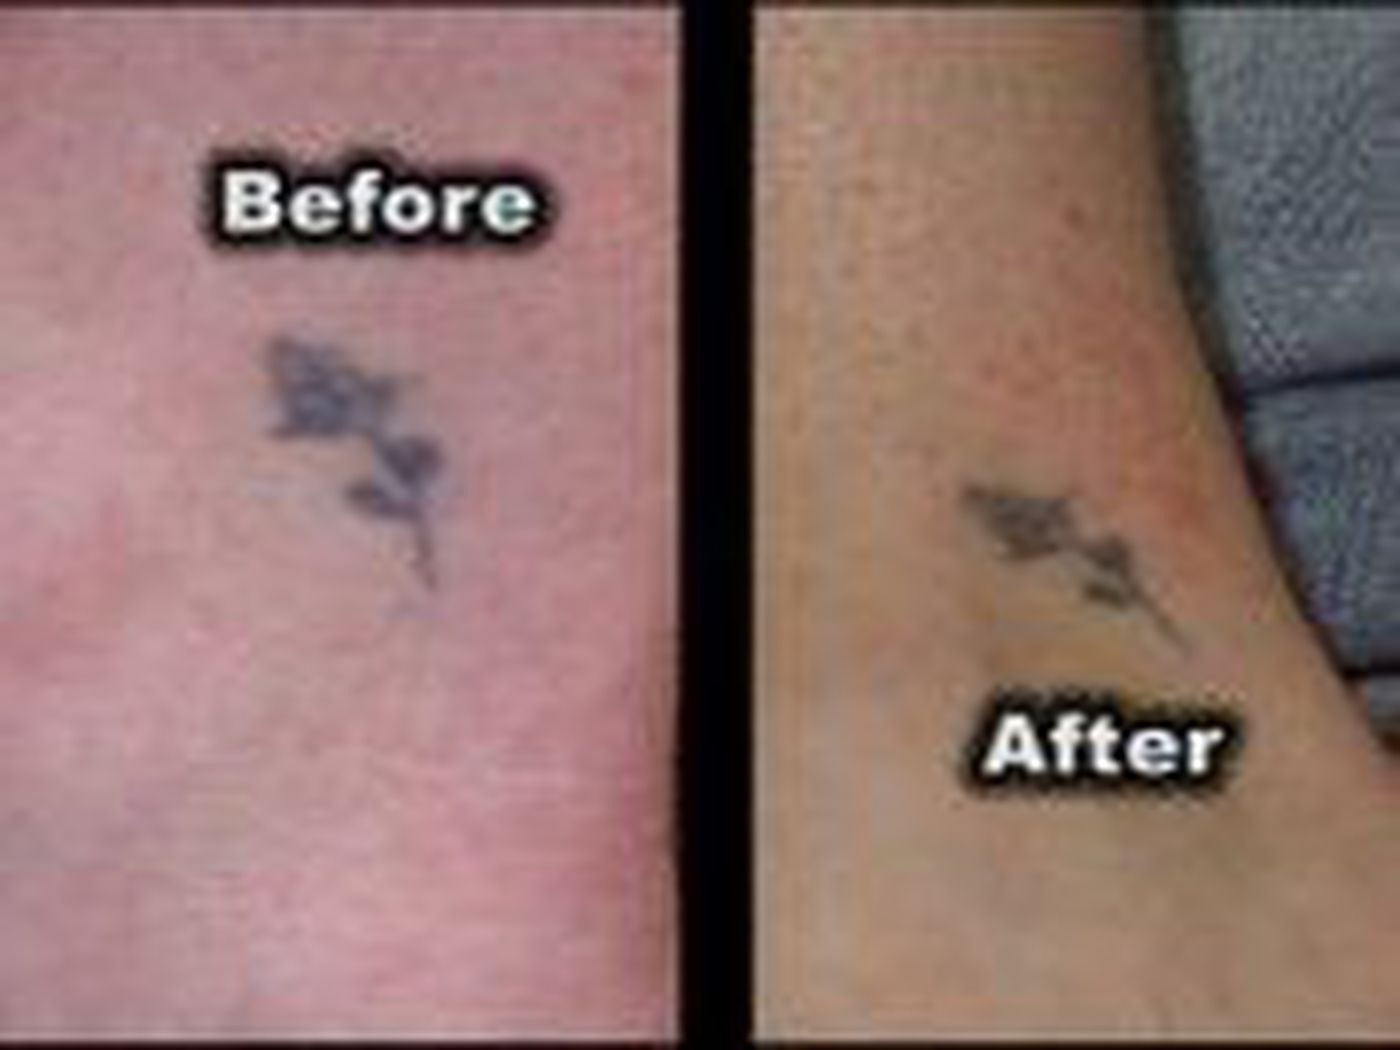 Wrecking Balm Tattoo Remover: Does it Work?